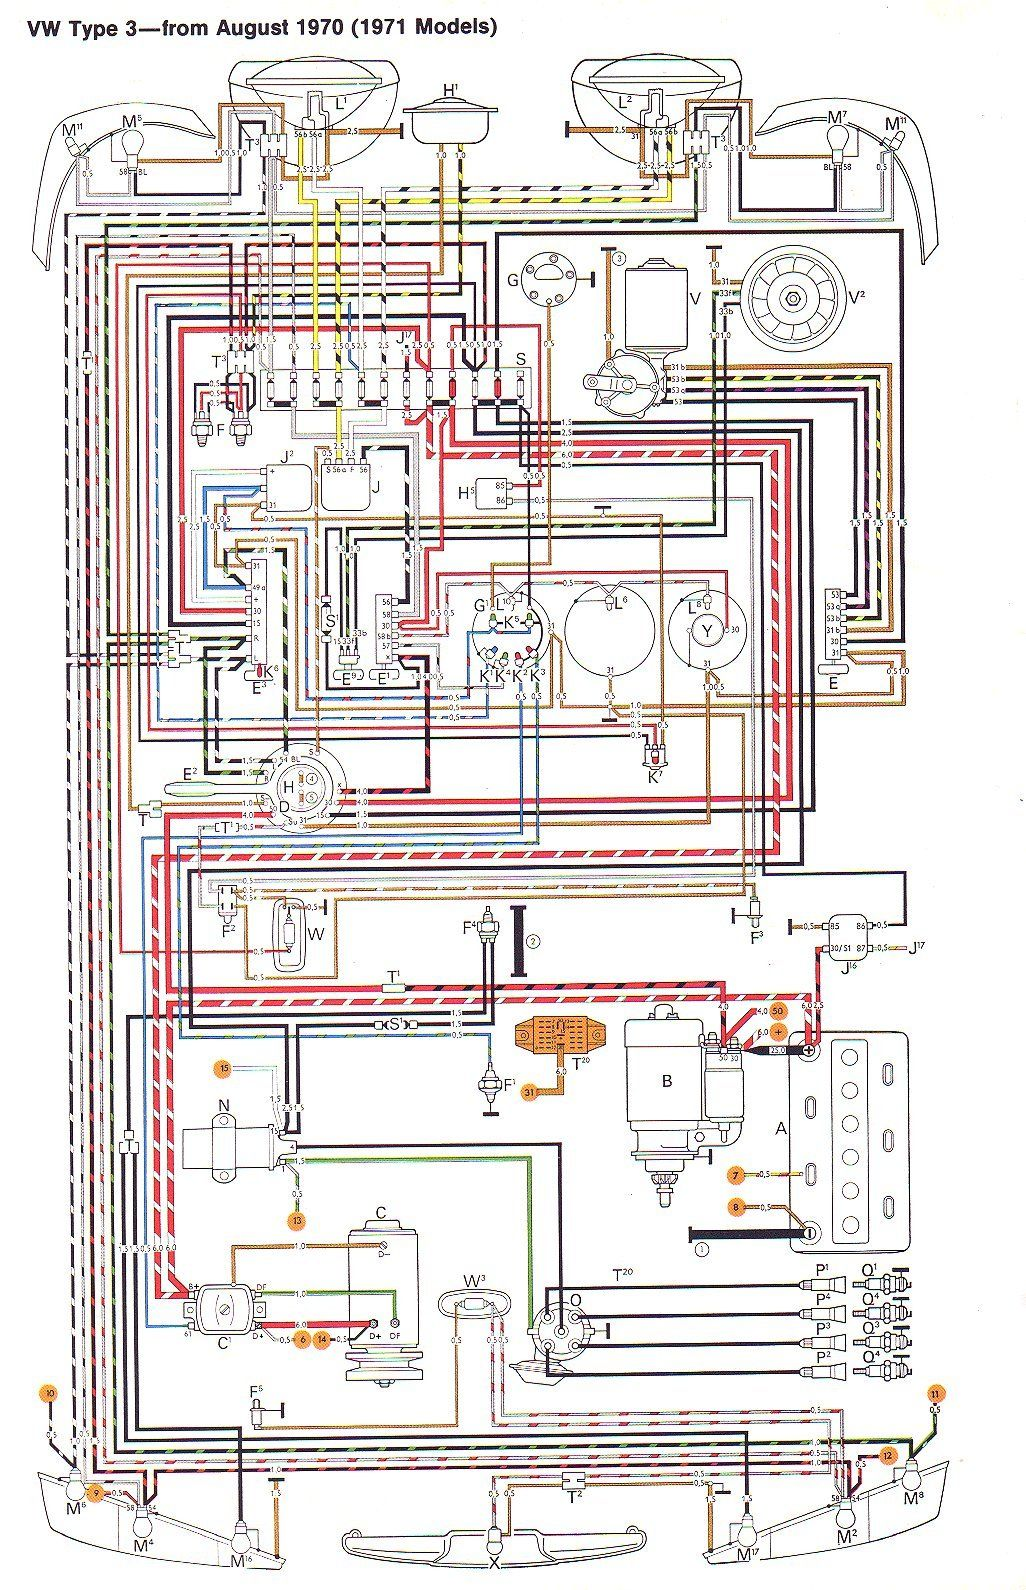 71 Vw T3 Wiring Diagram Ruthie Pinterest Cars Beetles And Wire Porsche 356 Loom Van Interior Type 3 Volkswagen Vintage